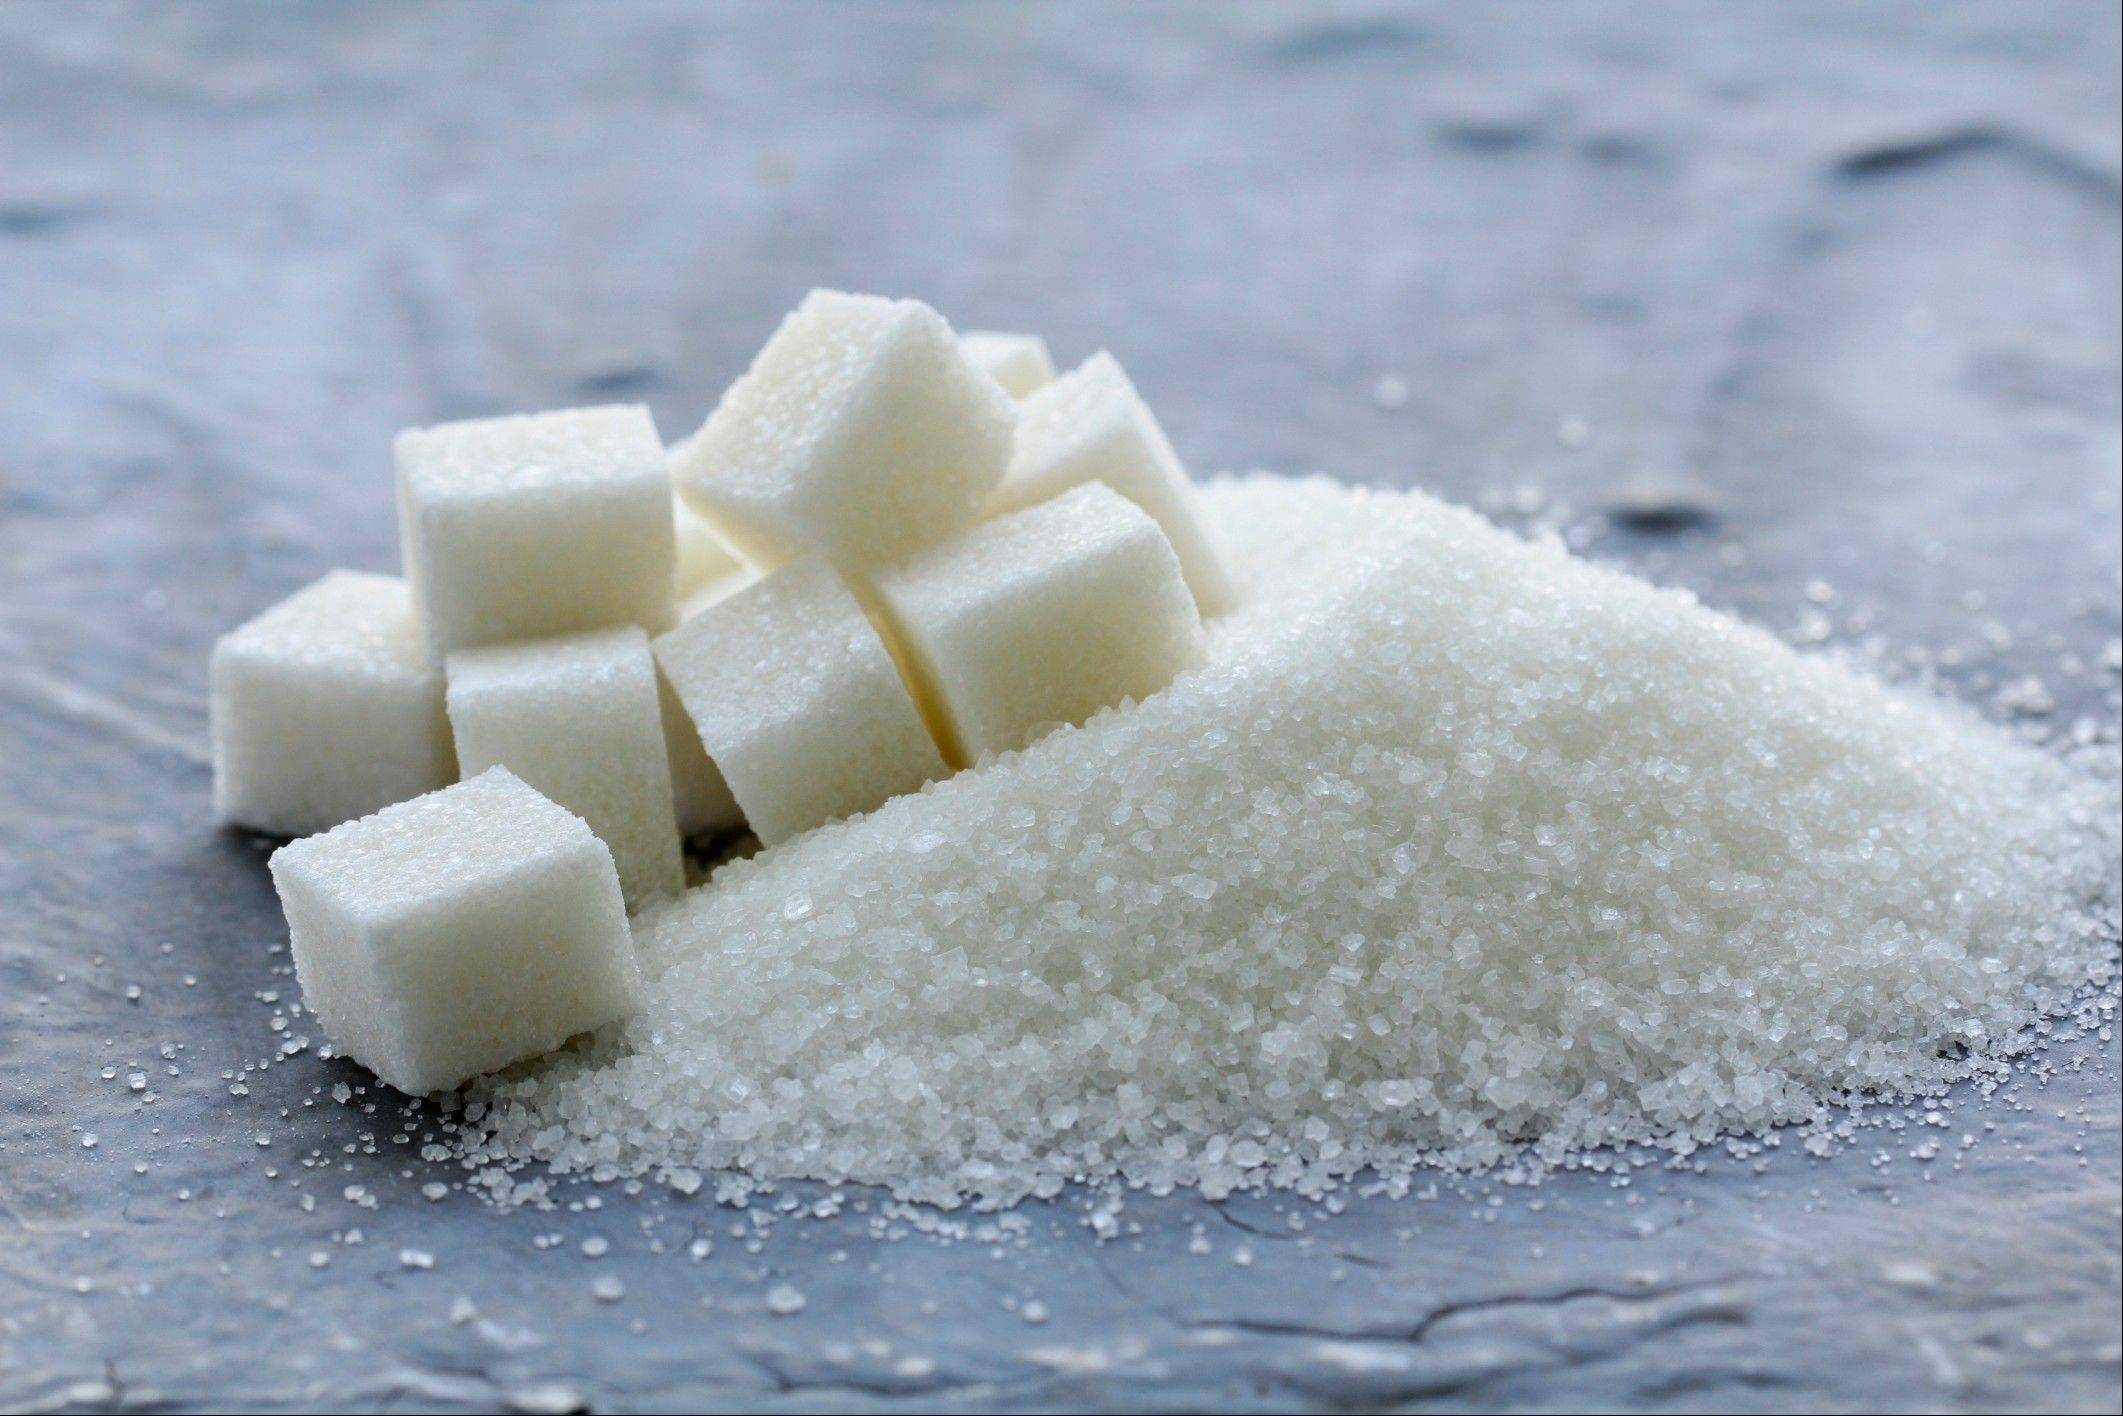 Watch out for too much sugar in your diet -- even a very small amount can have consequences.